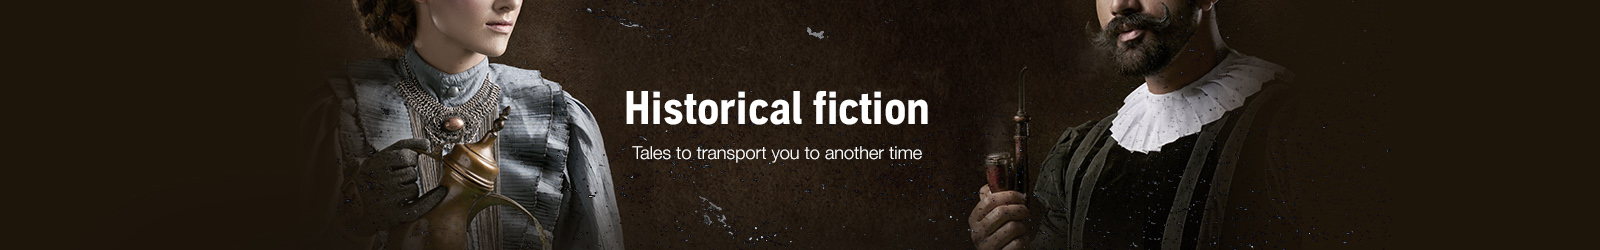 Historical - Fiction Audio Books | Audible co uk